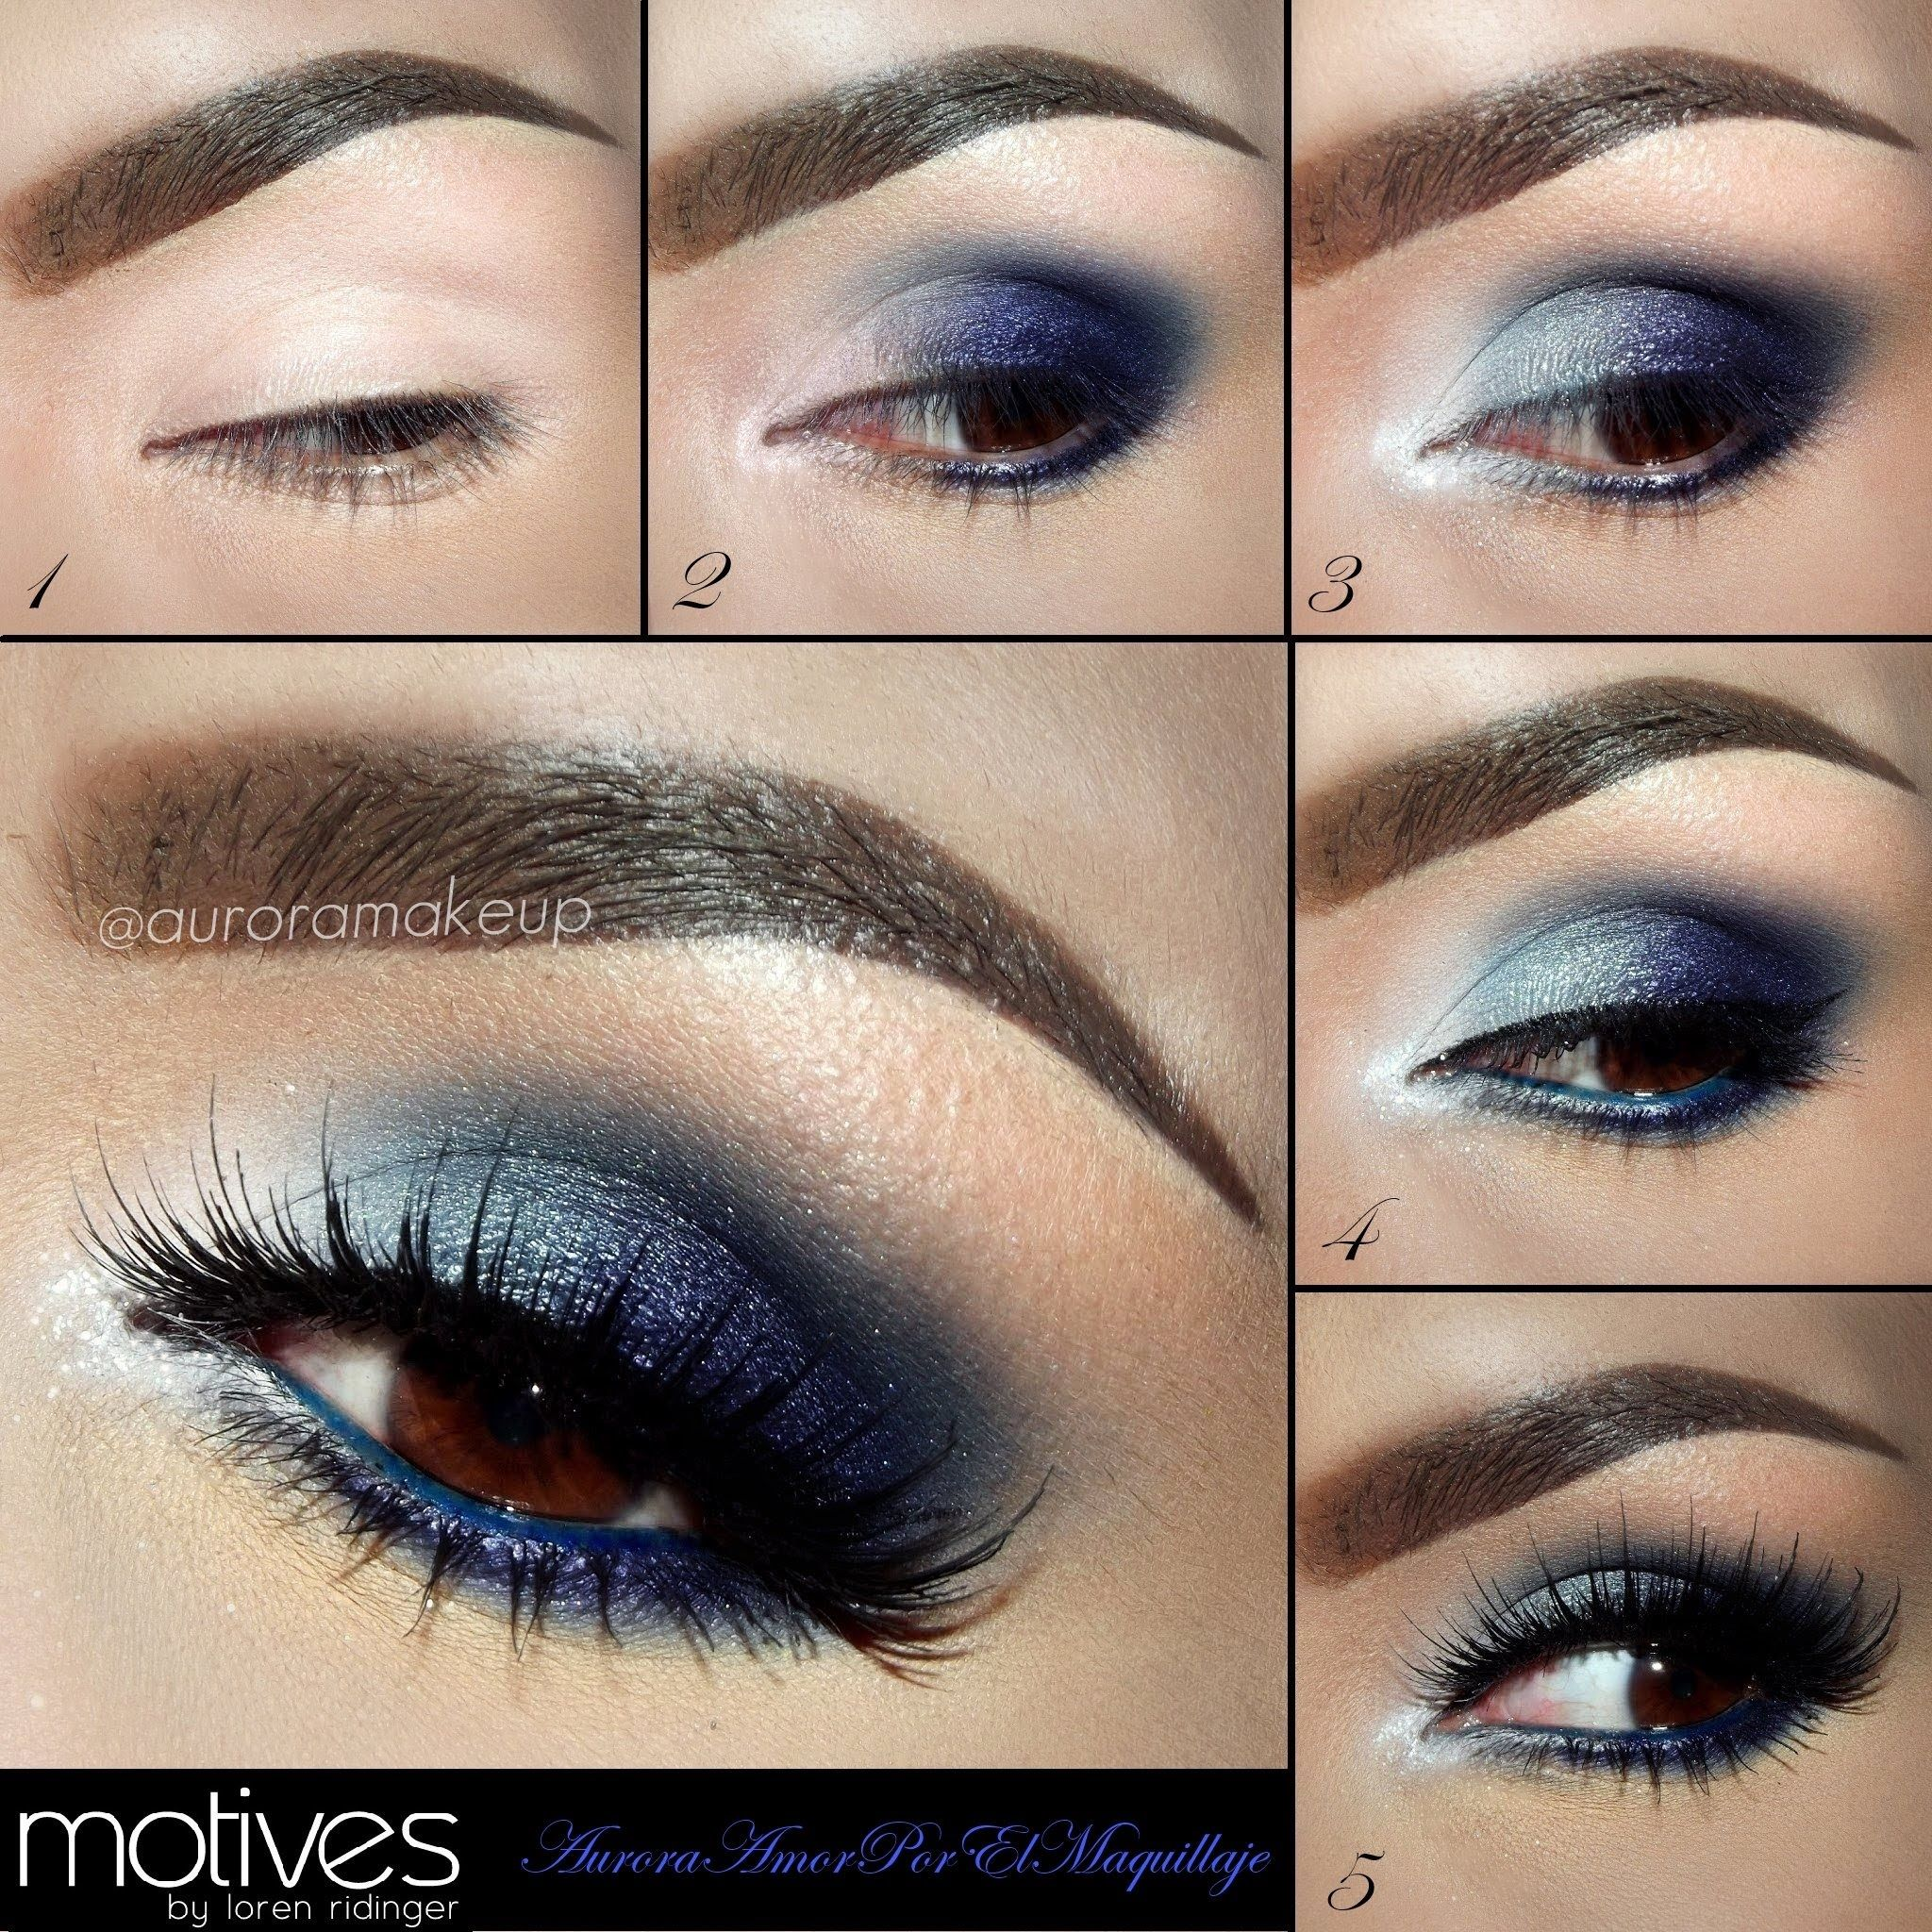 How to Apply Eyeshadow for Brown Eyes | Blue Eye Shadow for Brown ...